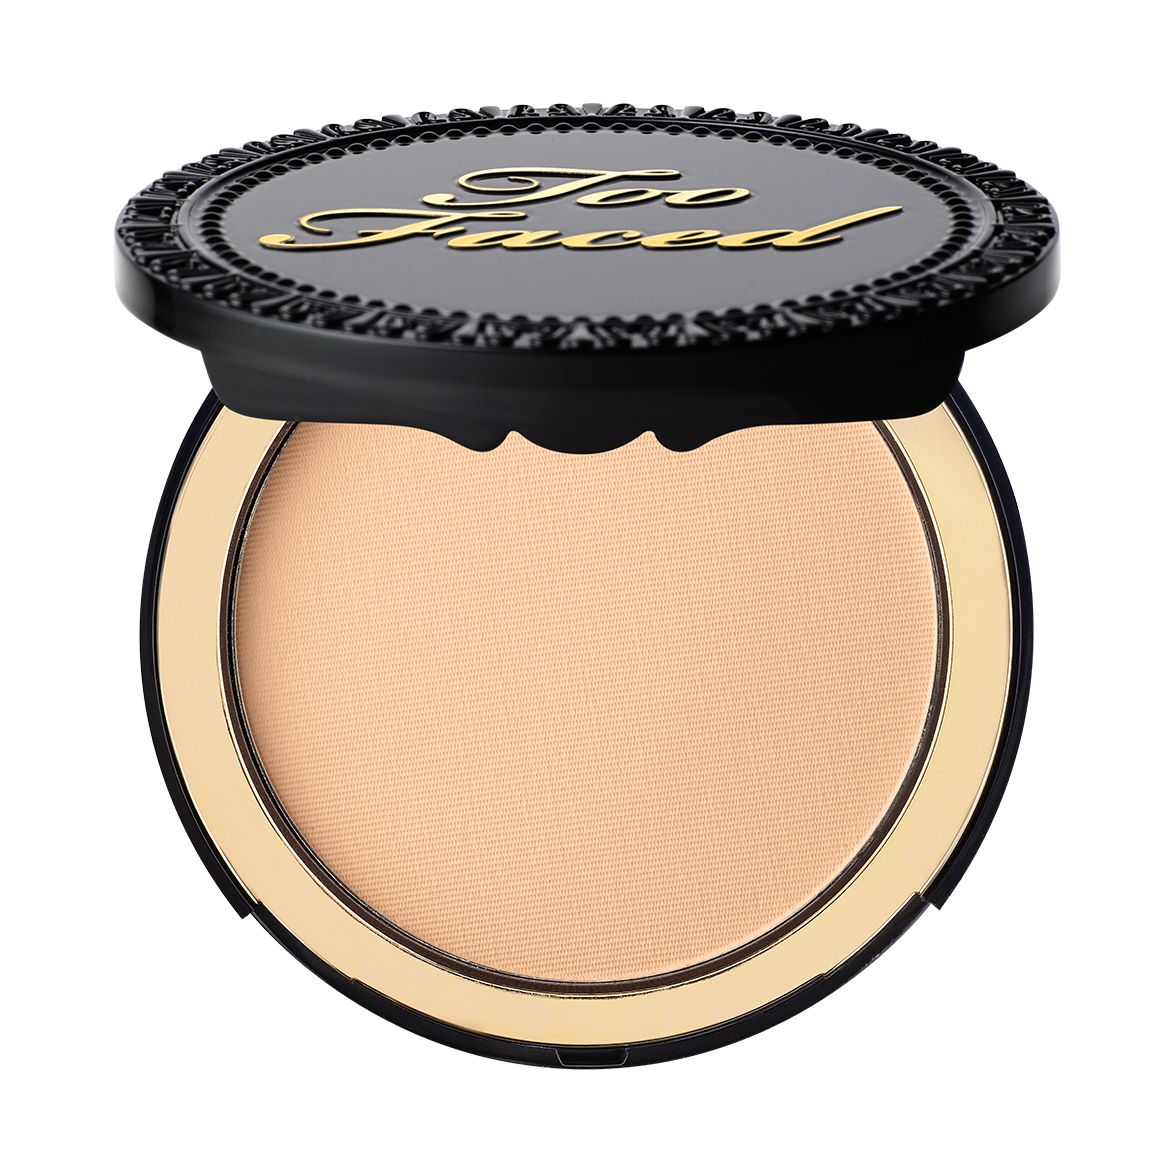 Cocoa Powder Foundation - Too Faced